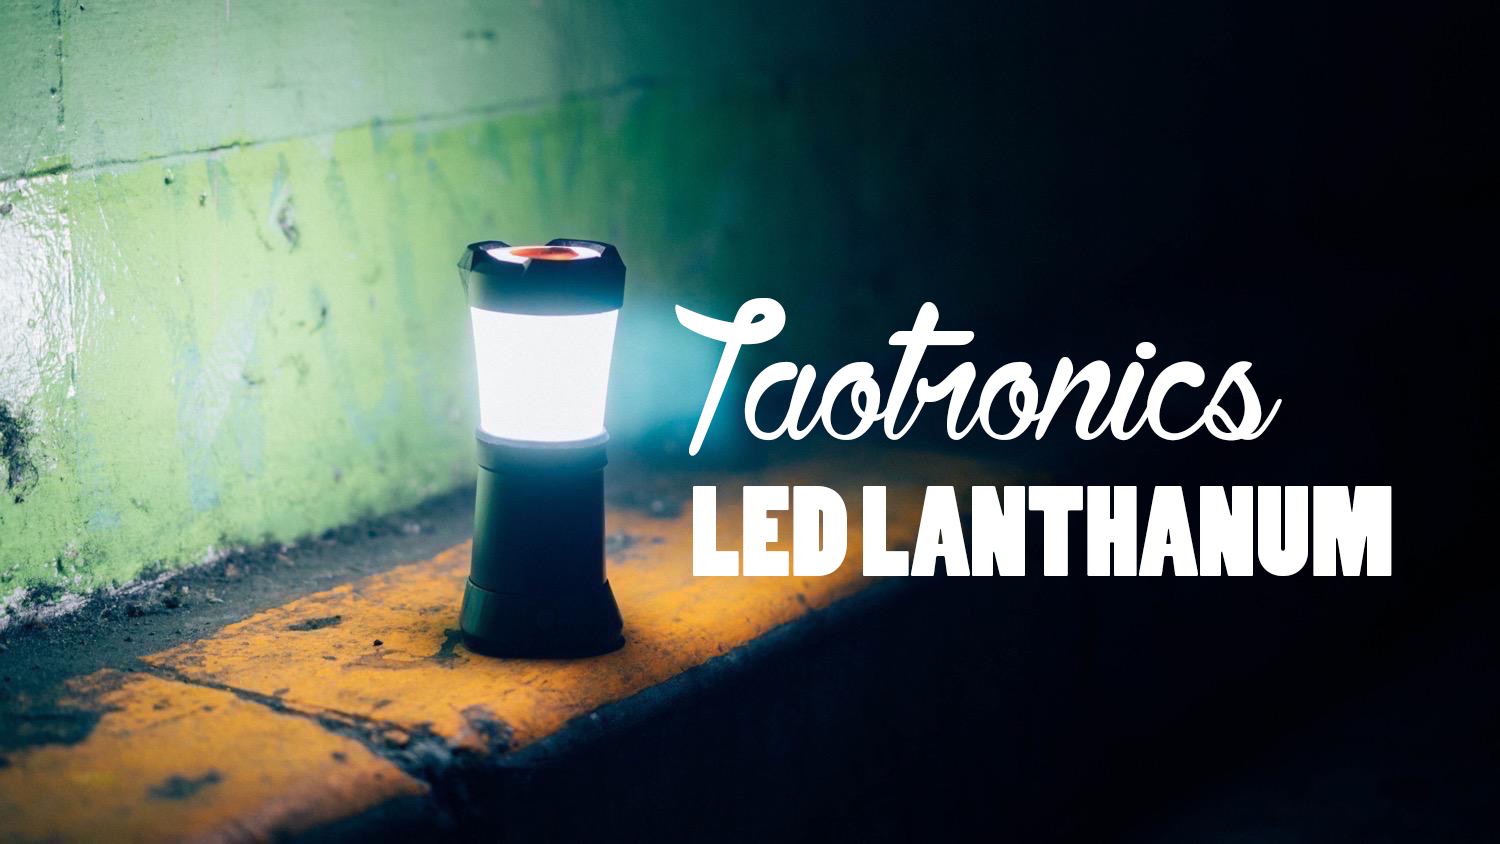 Taotronics led lanthanum TOP